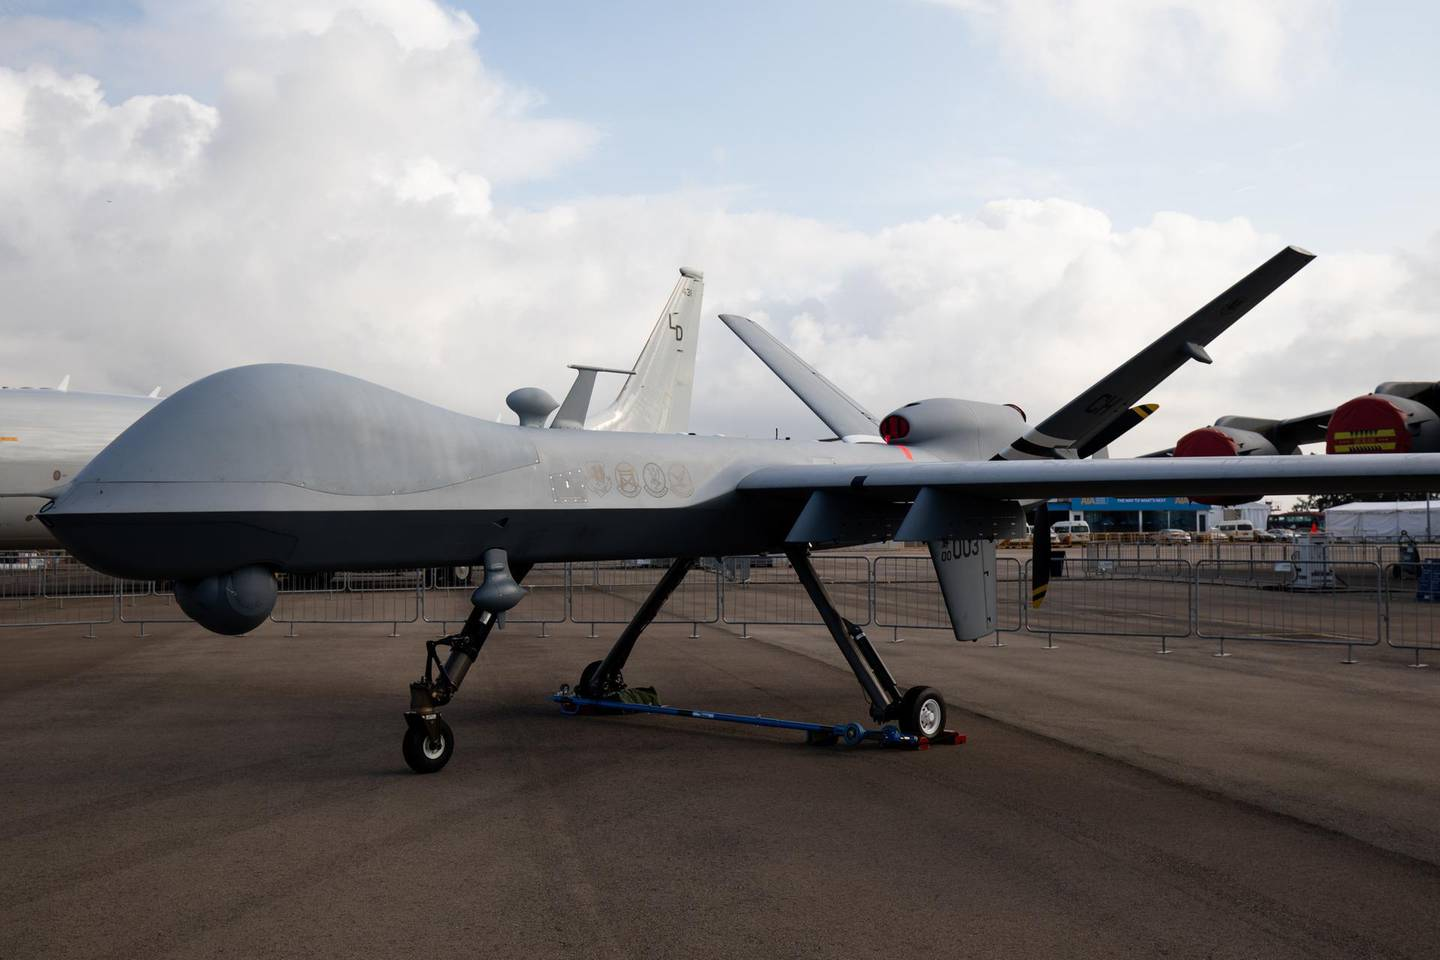 A U.S. Air Force MQ-9 Reaper unmanned aerial vehicle (UAV) drone, manufactured by General Atomics Aeronautical Systems Inc, stands on display during the Singapore Airshow at the Changi Exhibition Centre in Singapore, on Tuesday, Feb. 11, 2020. Plane makers and airlines are exploring new designs to reduce fuel burn and cut carbon emissions in a warming climate. Blending the wings with the fuselage to cut drag is one of several possible solutions. Photographer: SeongJoon Cho/Bloomberg